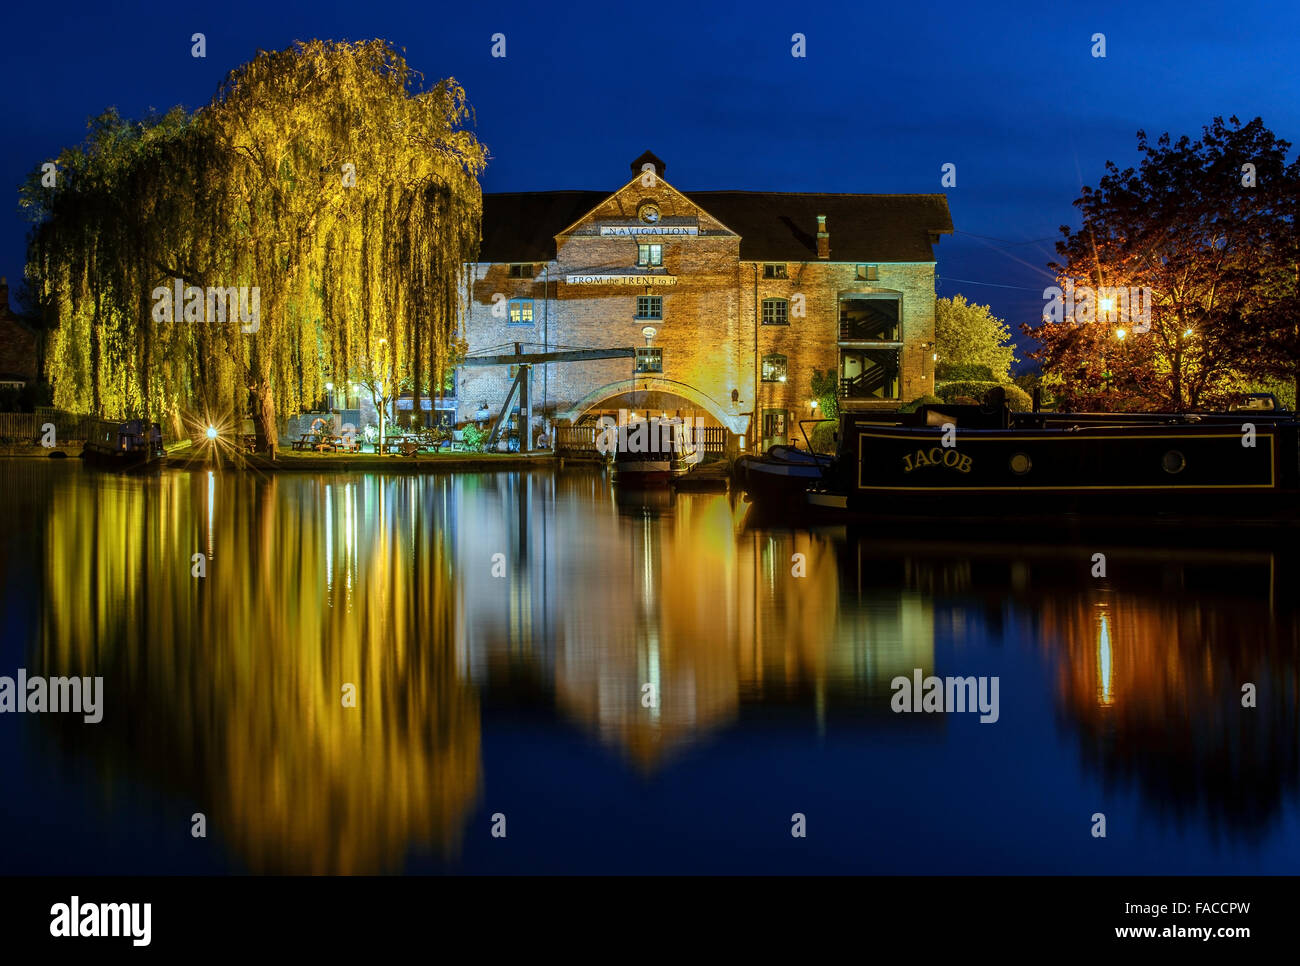 Blue hour long exposure of the Clock Warehouse pub, Shardlow, Derby. England. - Stock Image